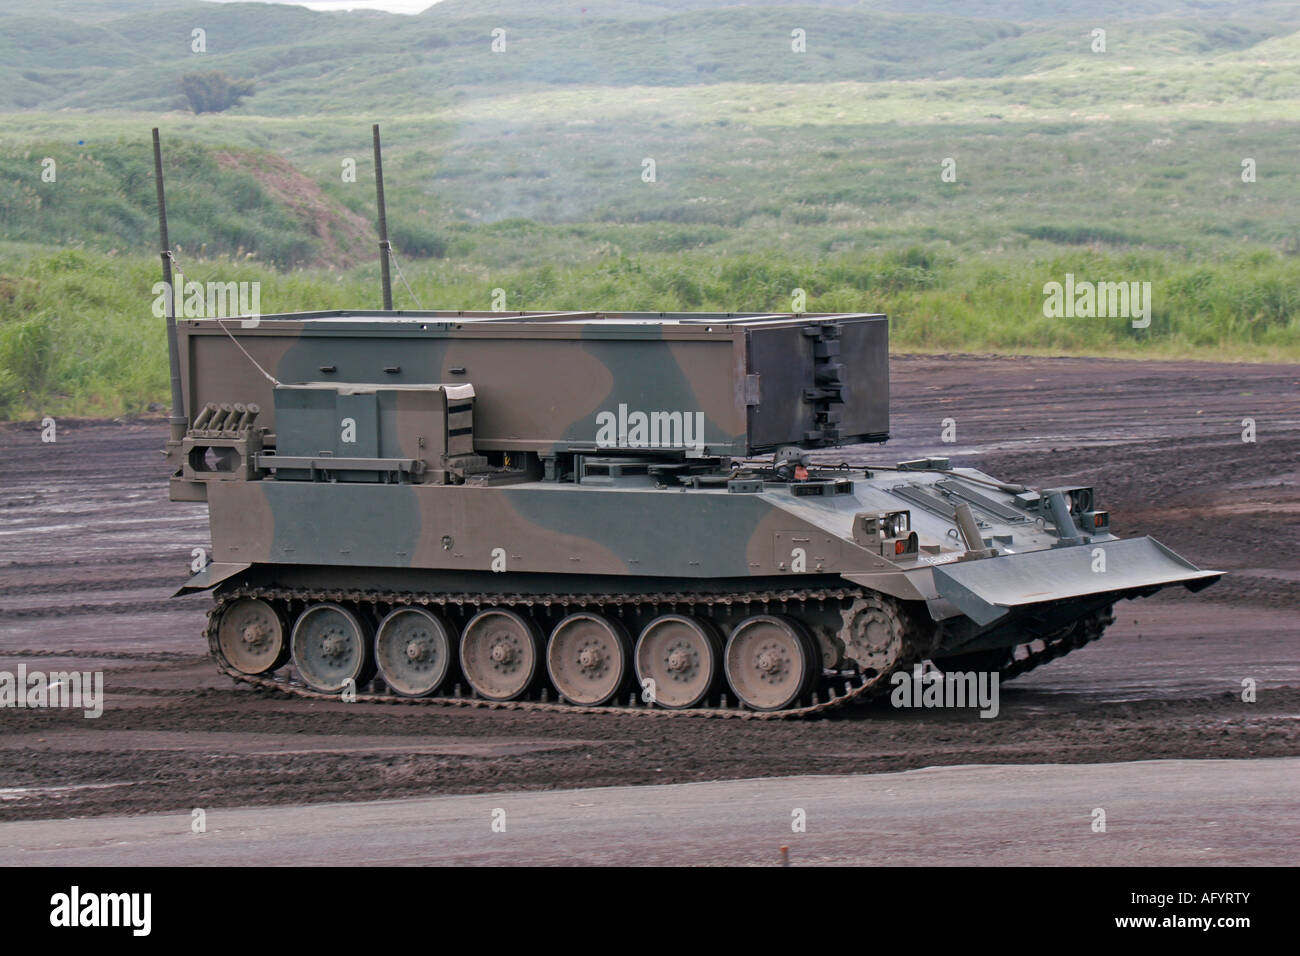 type 92 mine clearing vehicle of the japan ground self defense force stock photo 14047898 alamy. Black Bedroom Furniture Sets. Home Design Ideas